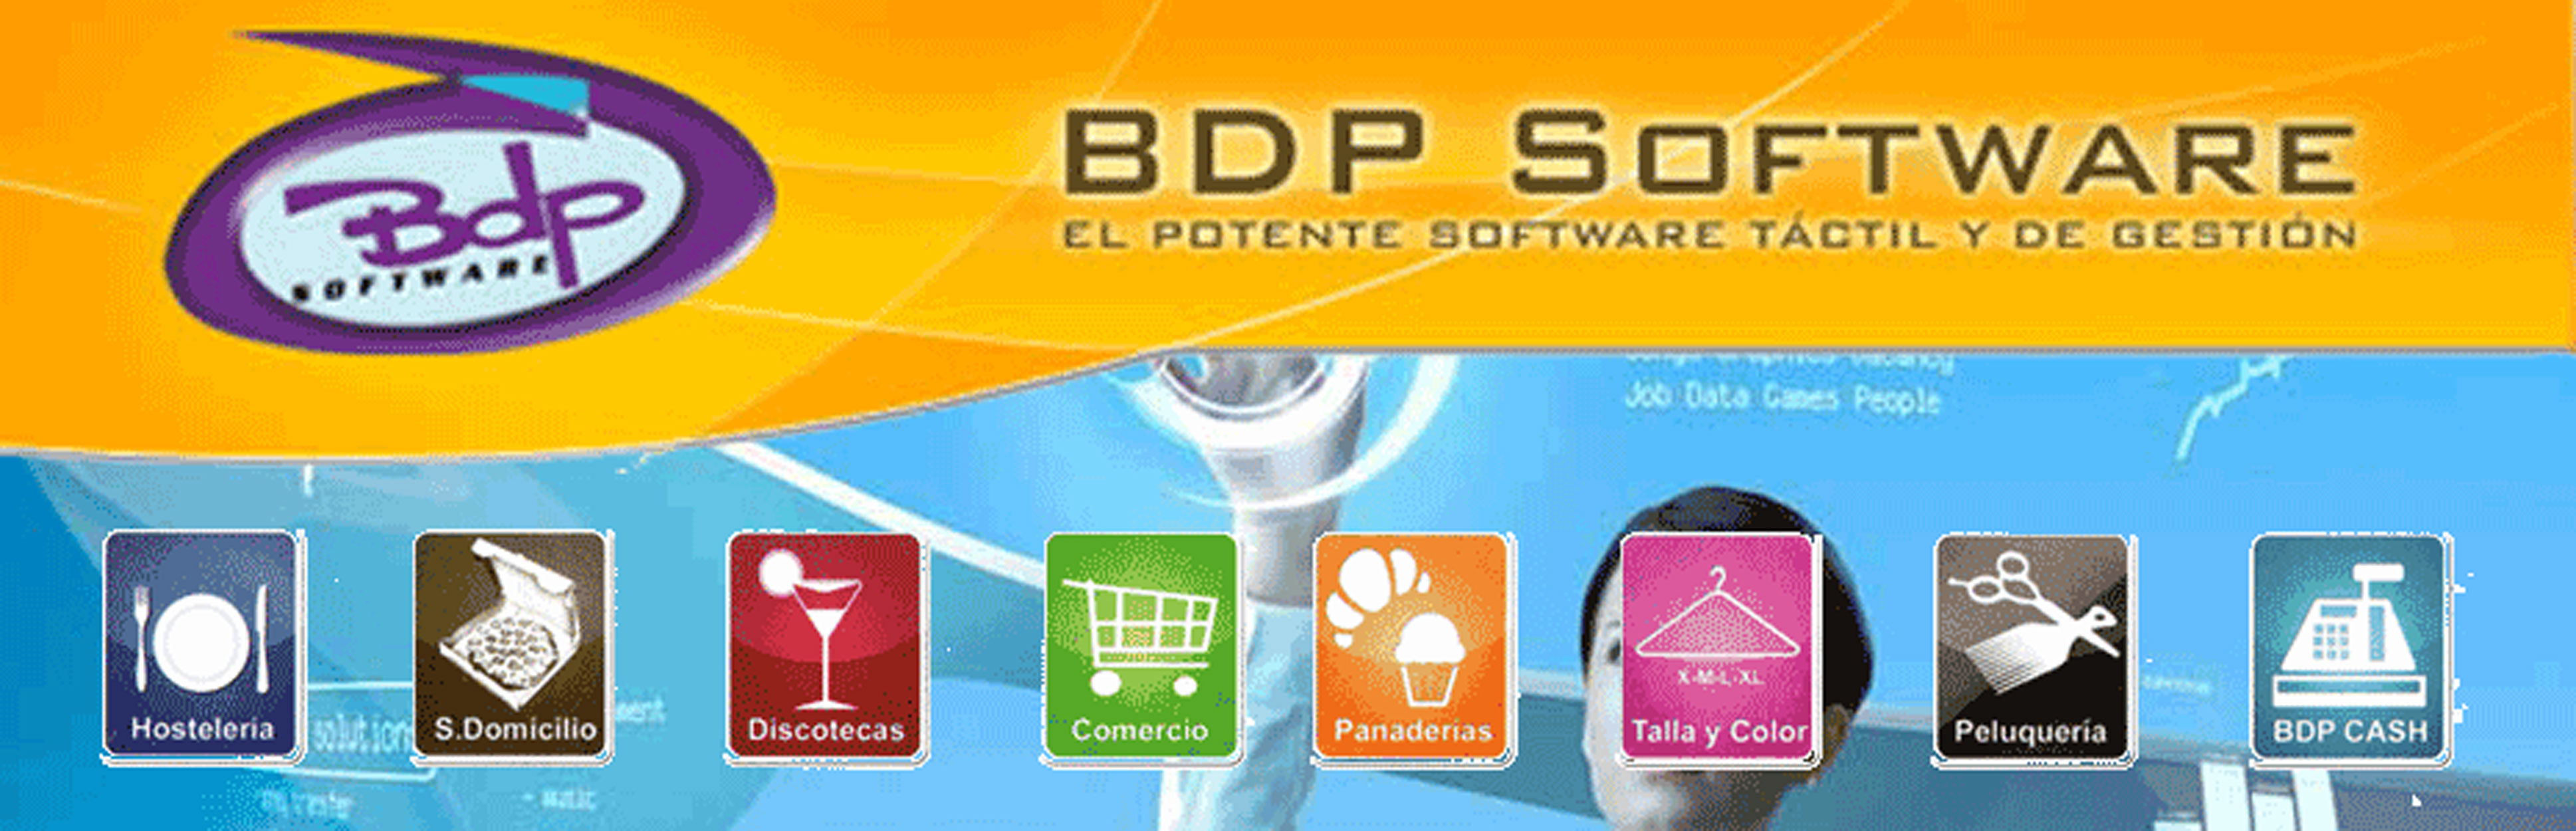 bdp software - bdp madrid - bdp net - bdp hosteleria